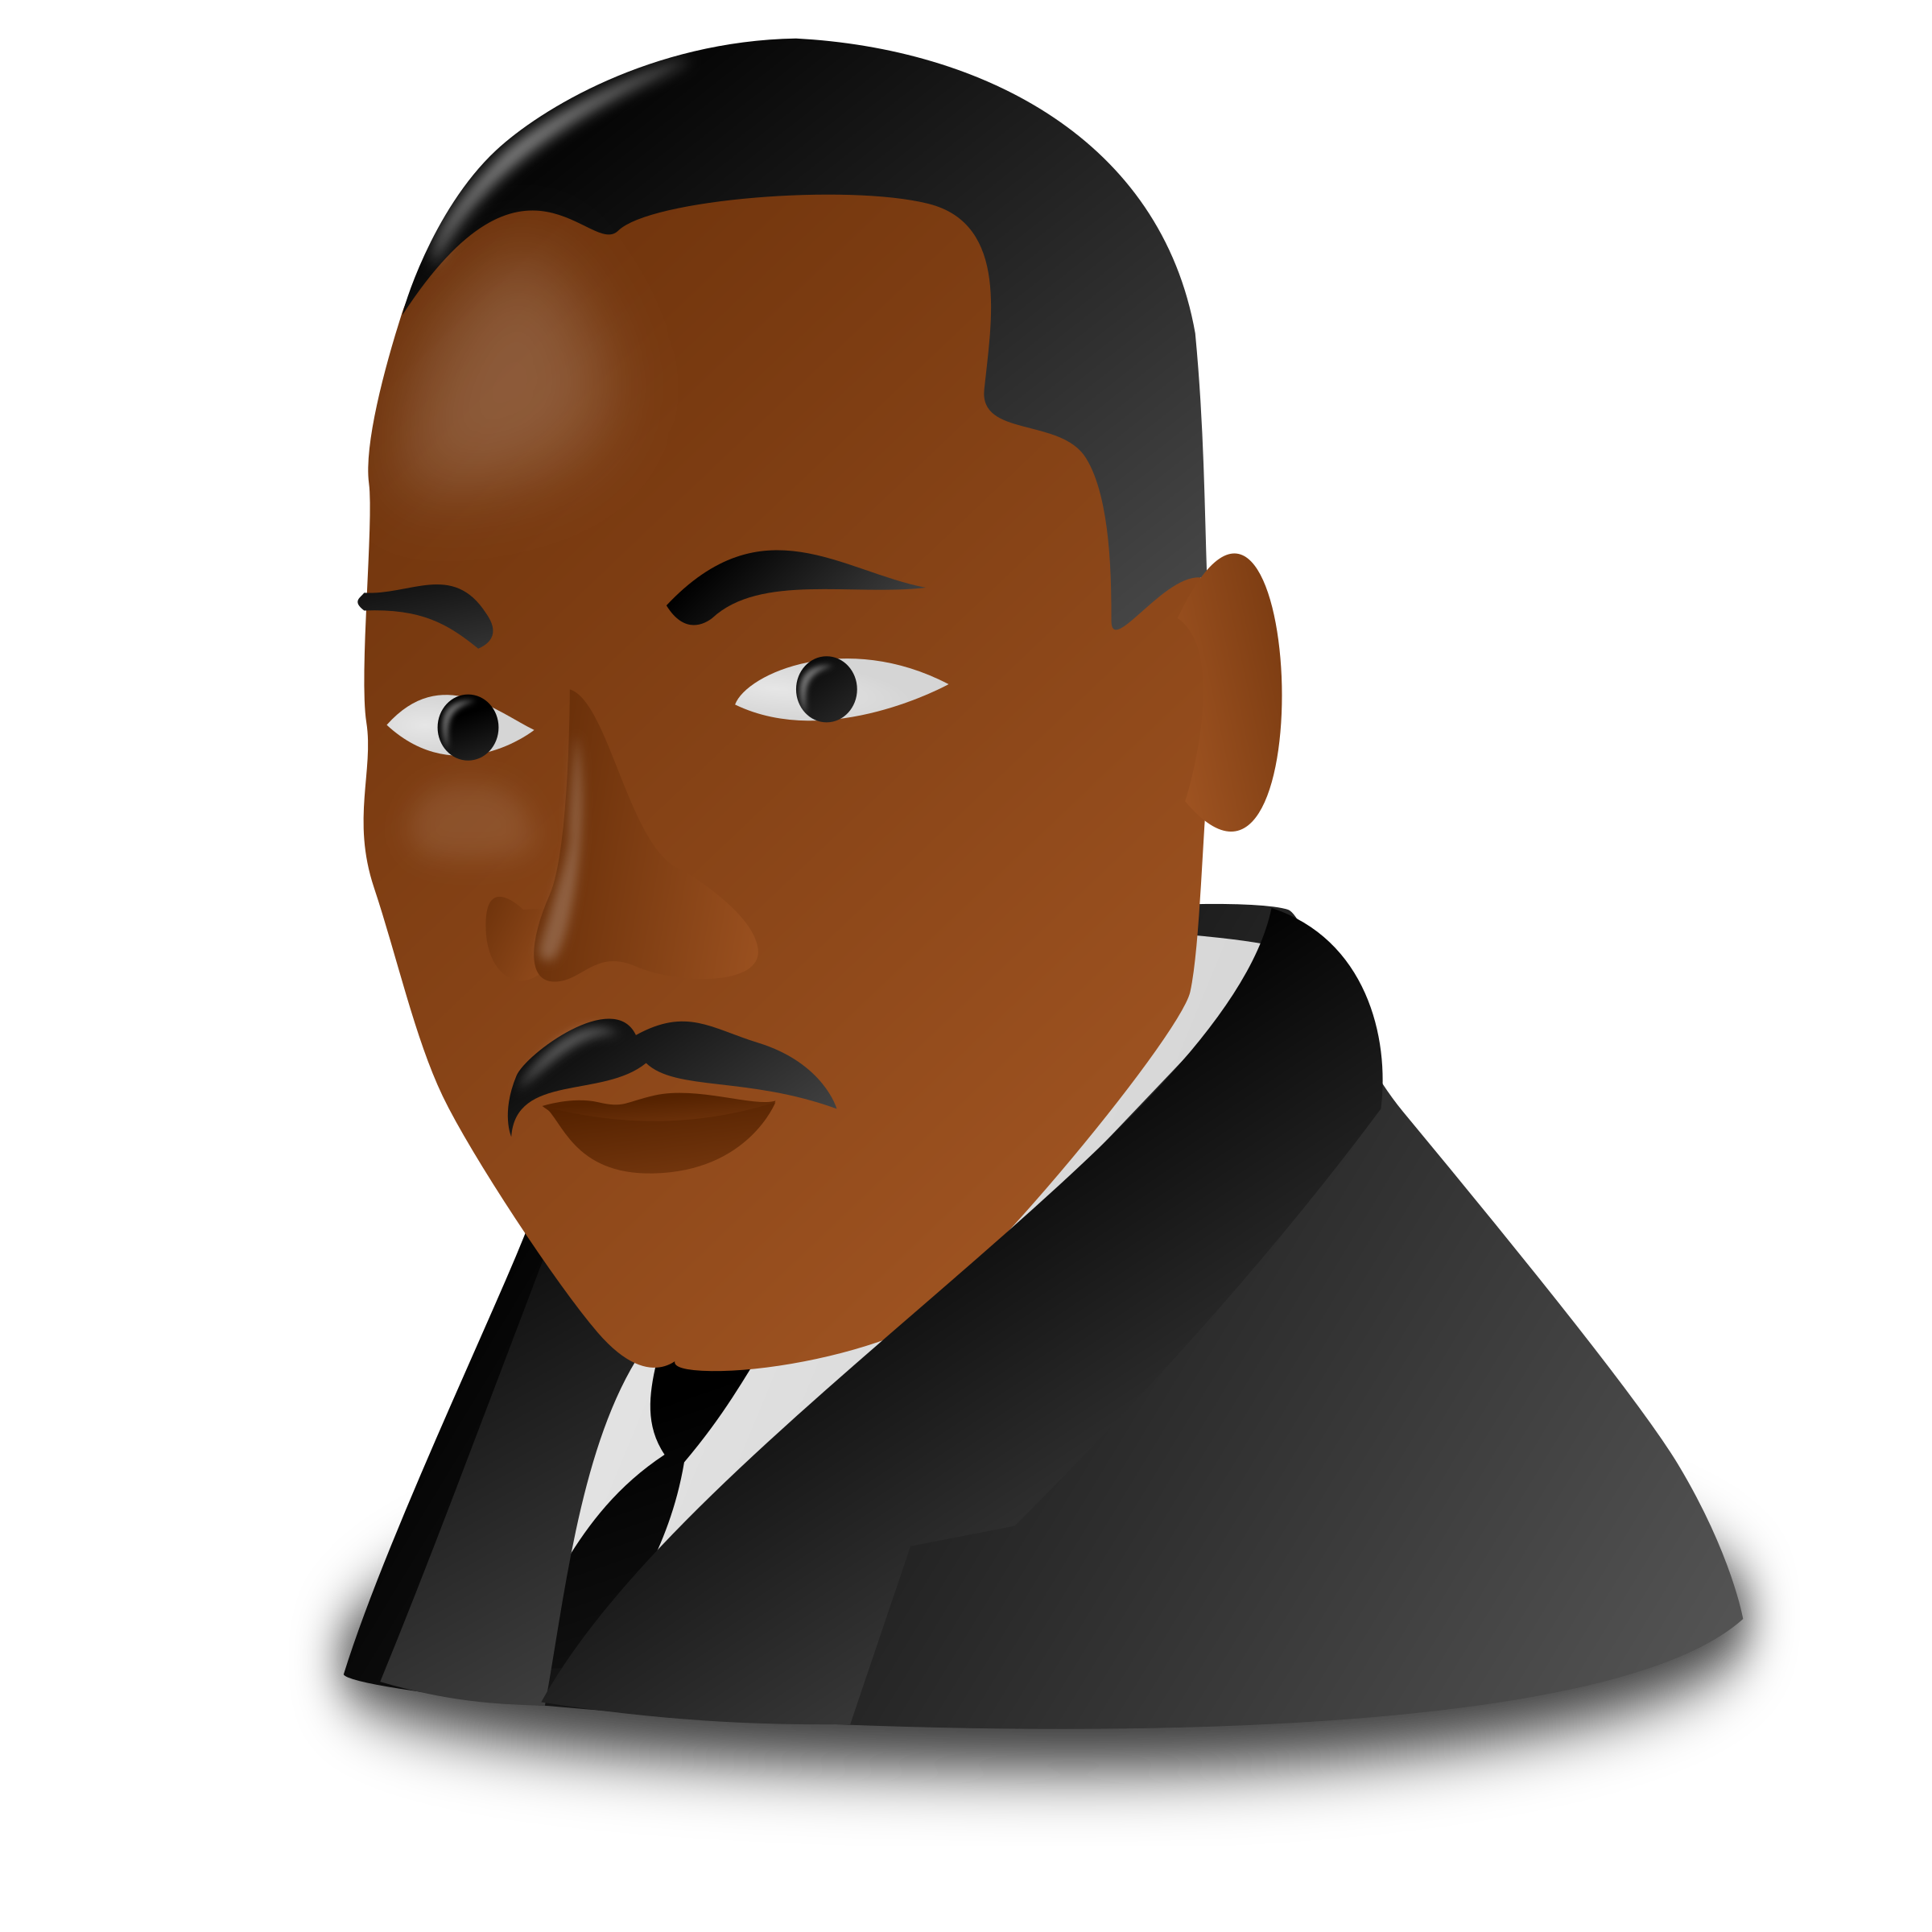 Martin luther jr clipart. King day icon big